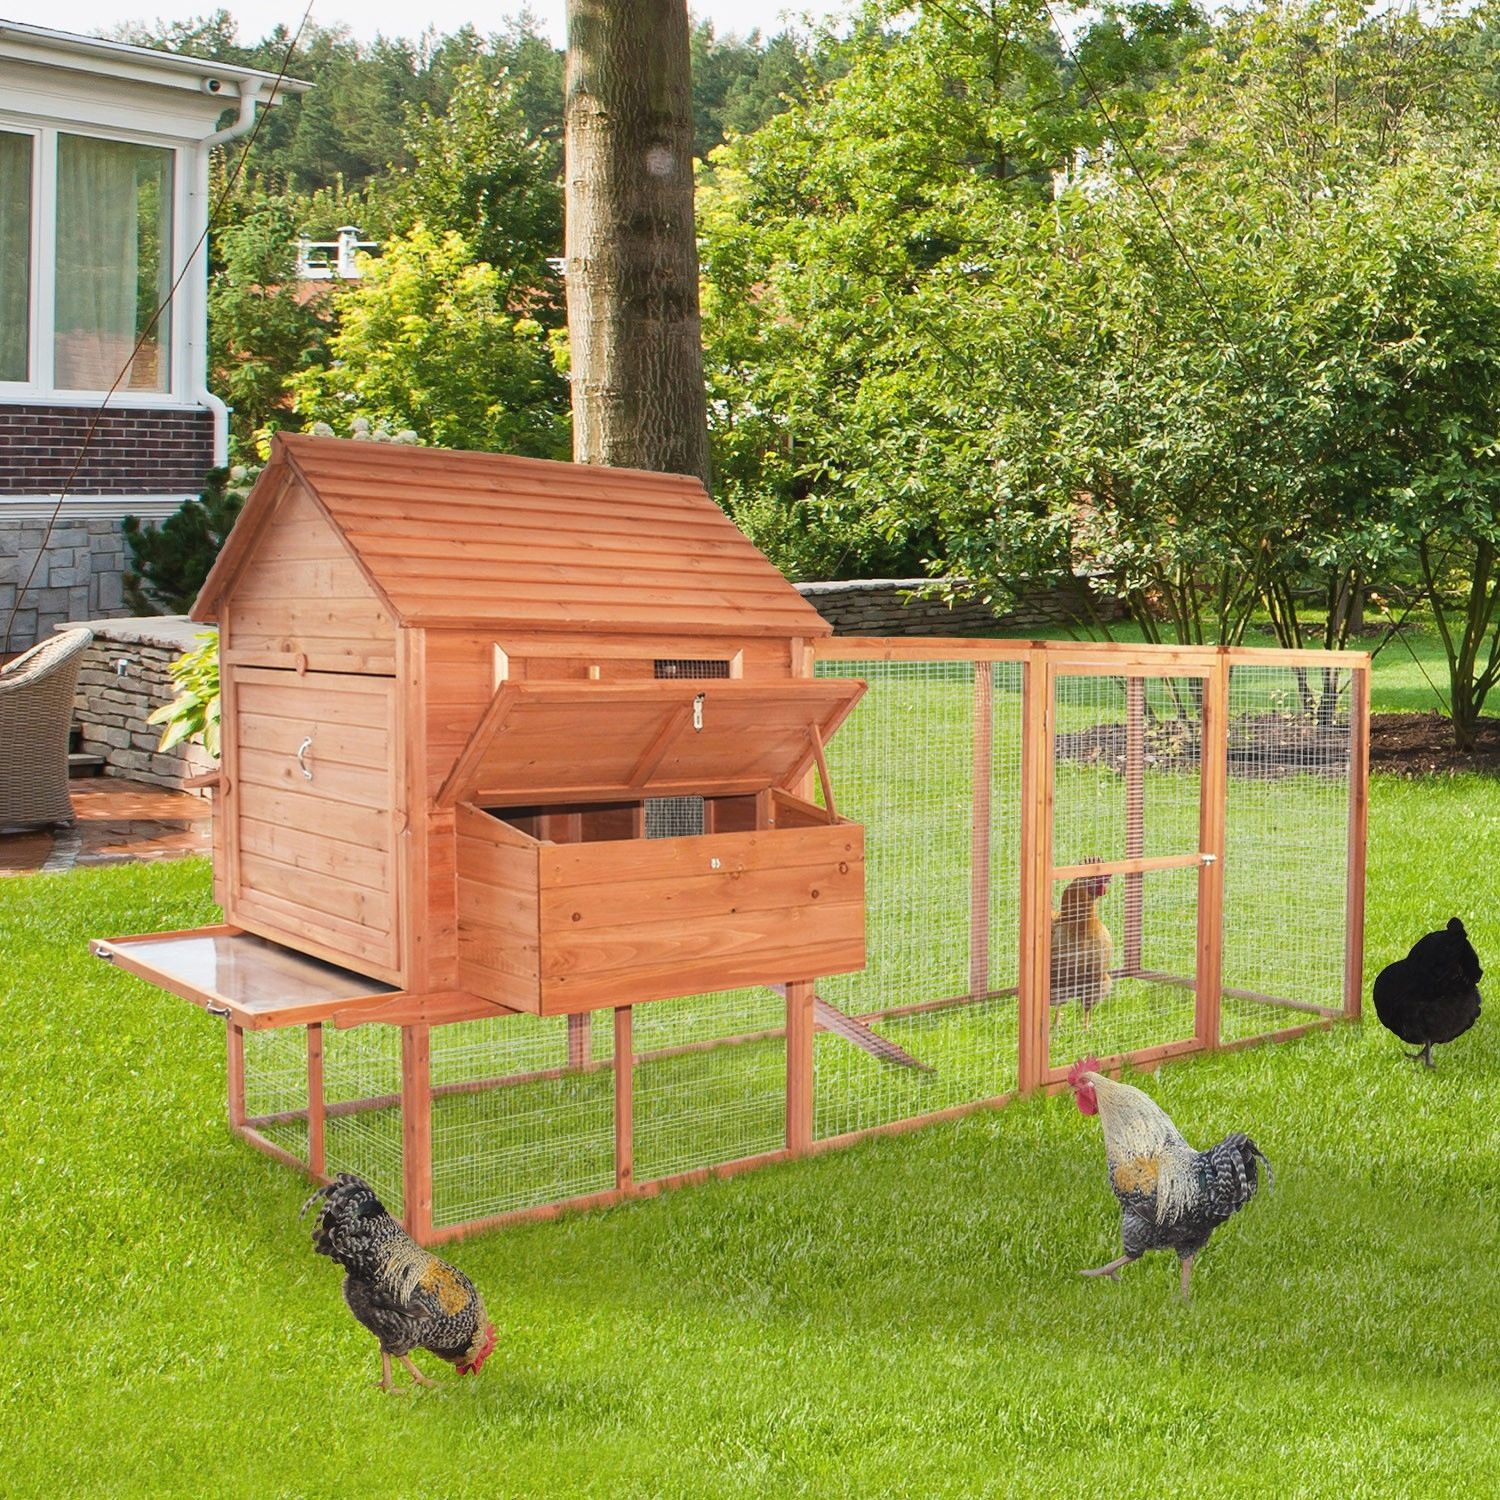 50 Easy Chicken Coop Designs You Can Try For Your Backyard Chickens Backyard Chicken Coop 7 Chickencoo Building A Chicken Coop Diy Chicken Coop Chicken Diy Backyard poultry house design